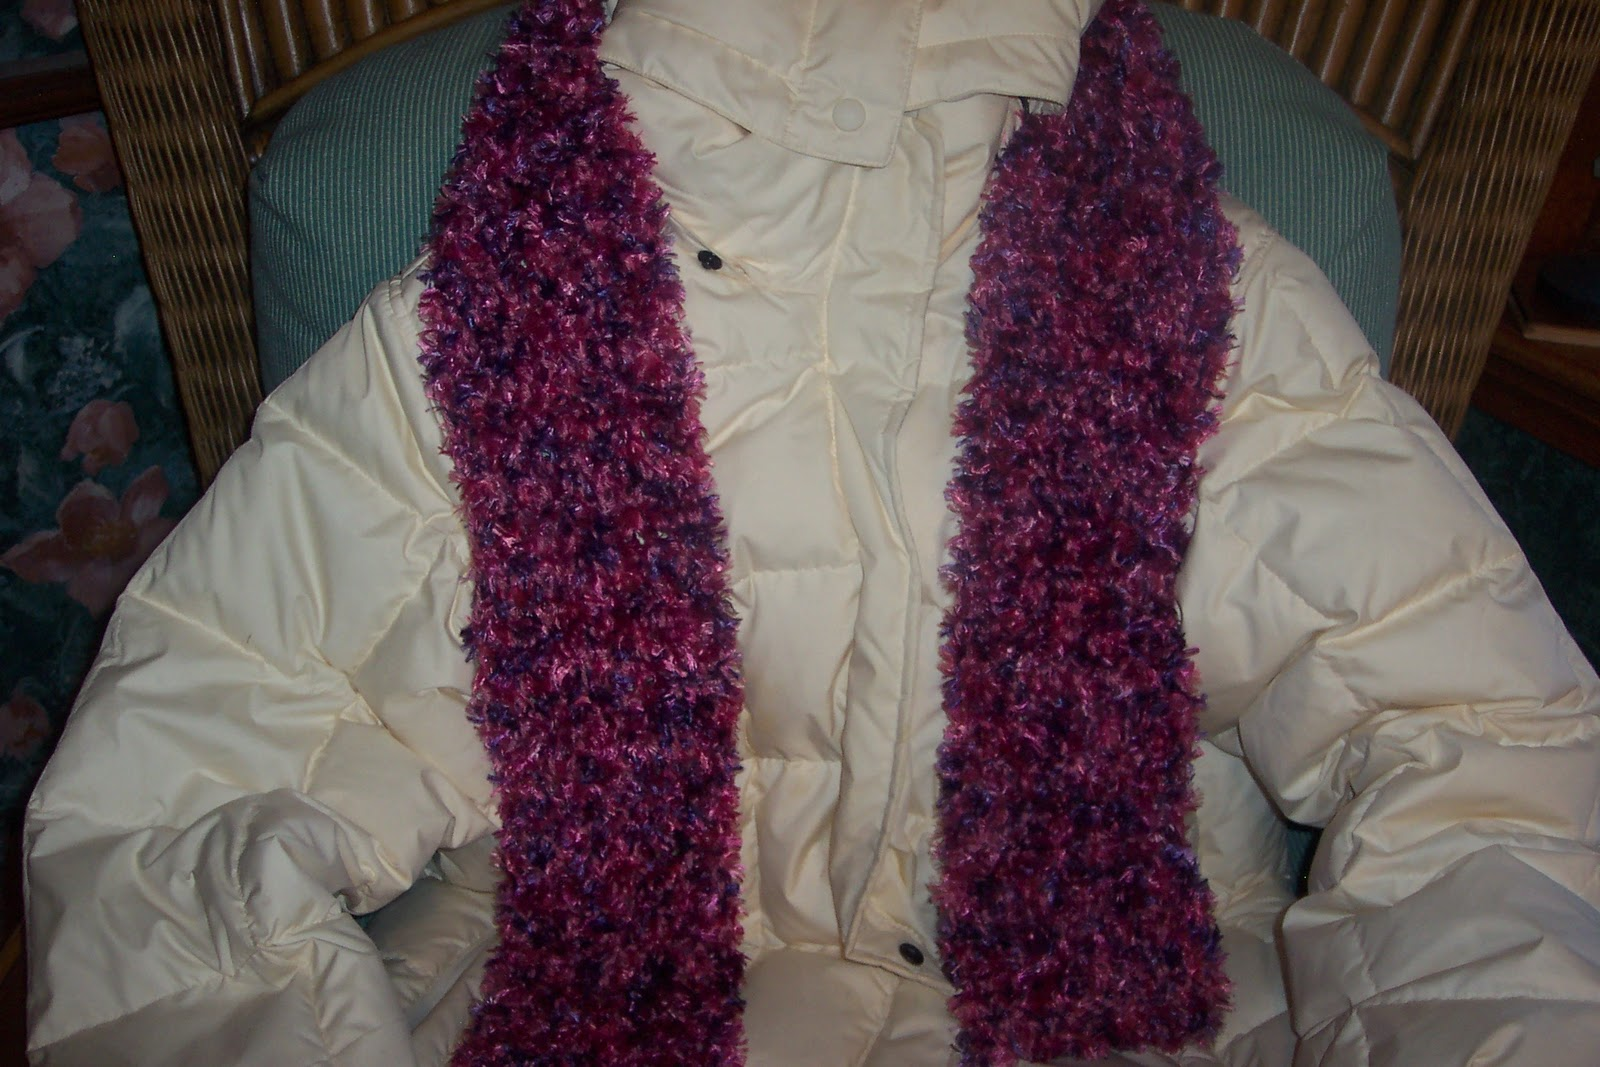 Free Crochet Pattern For Boa Scarf : Boa furs pattern bernat 2005 Knit crochet cape poncho wrap ...